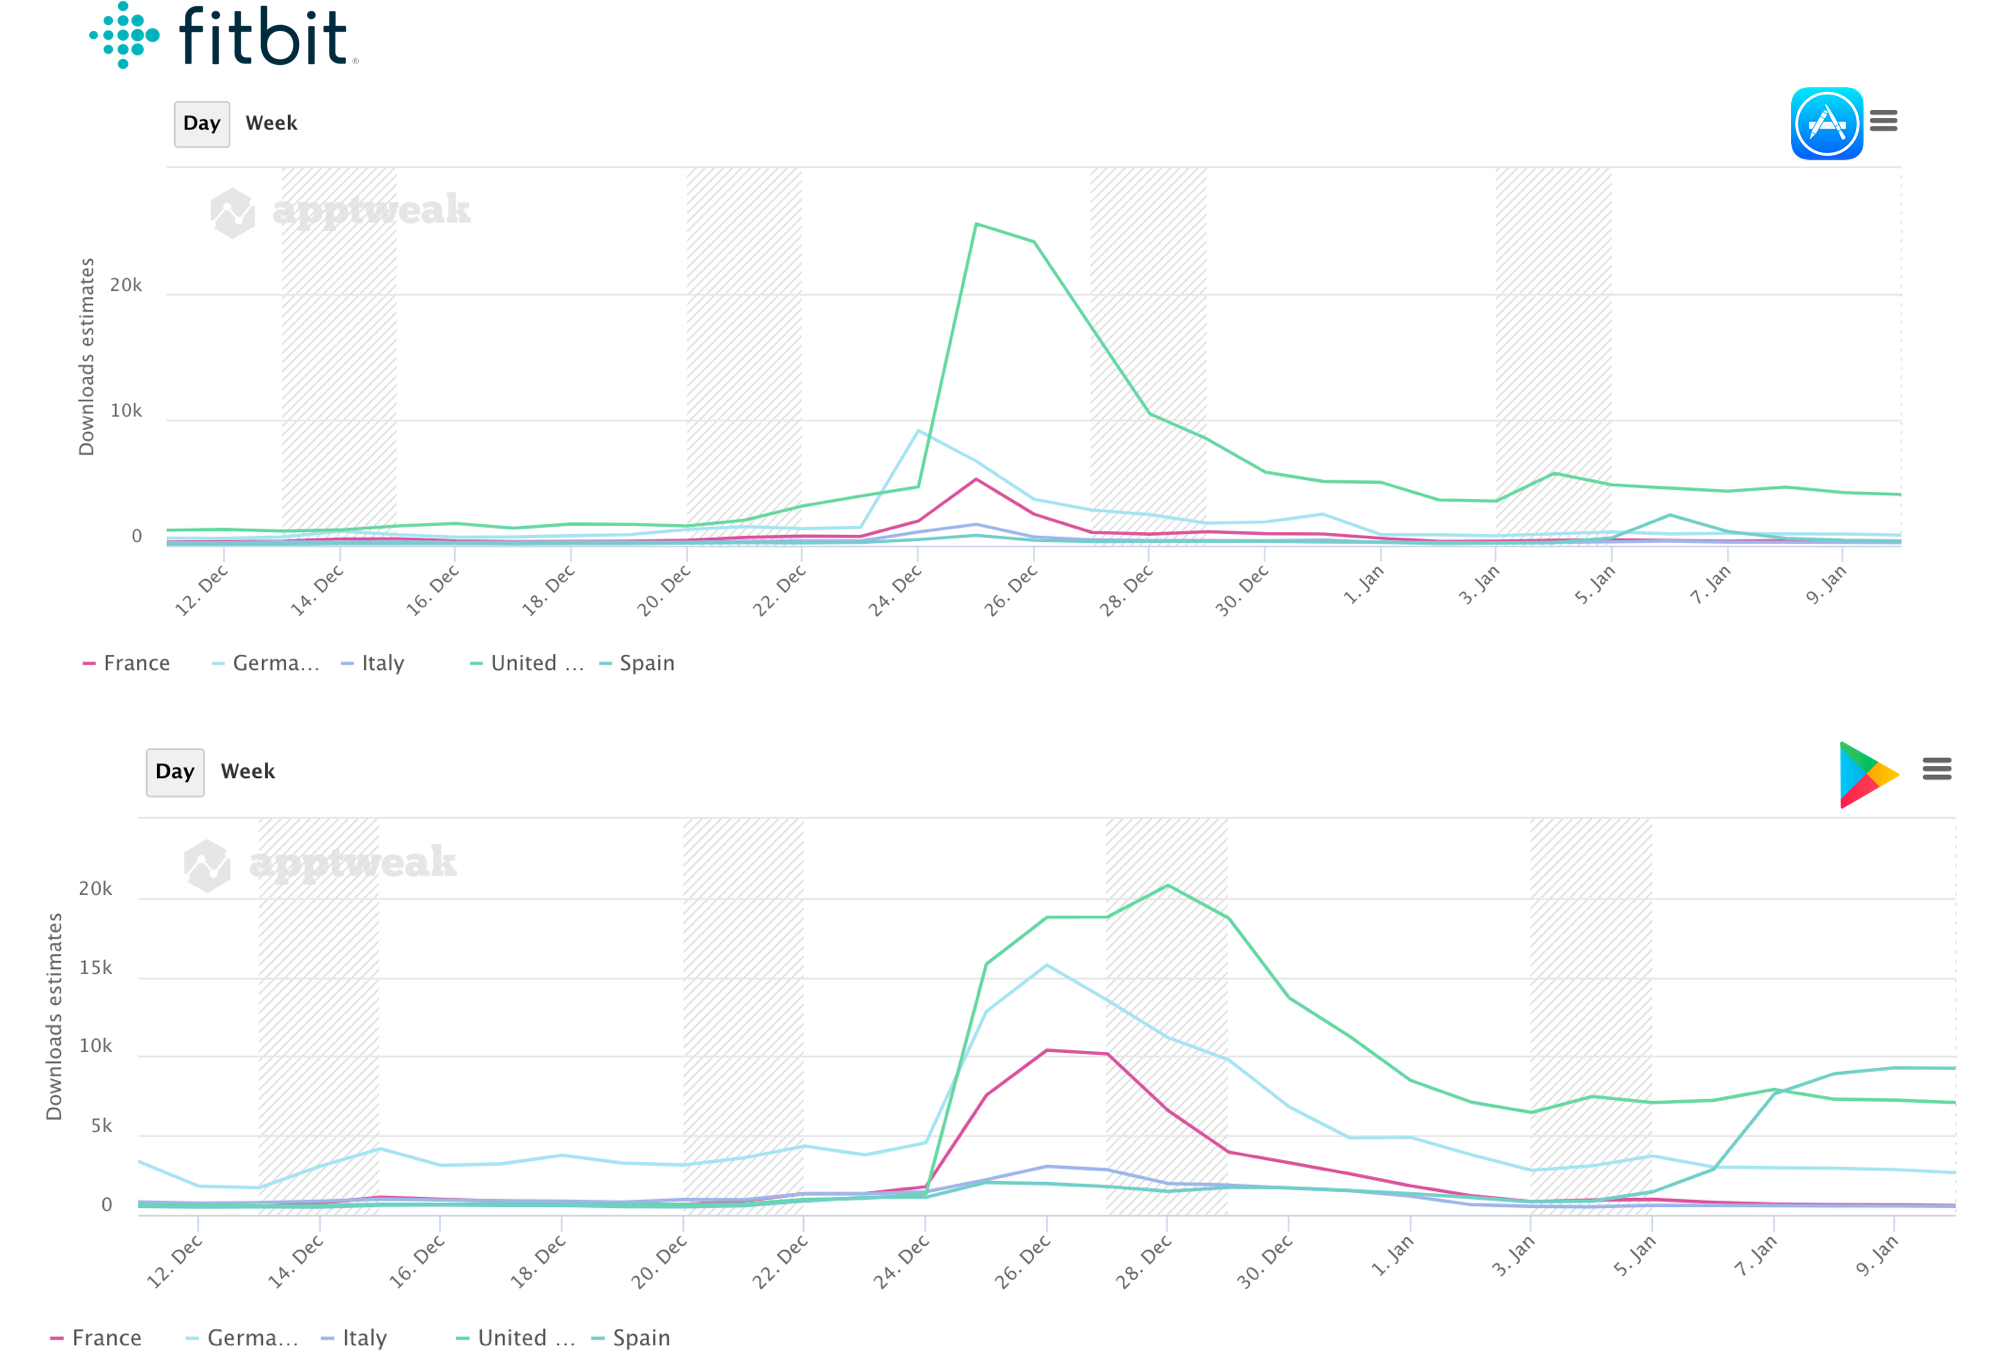 AppTweak App Intelligence - Comparing Fitbit's peak in downloads across Stores and Countries.